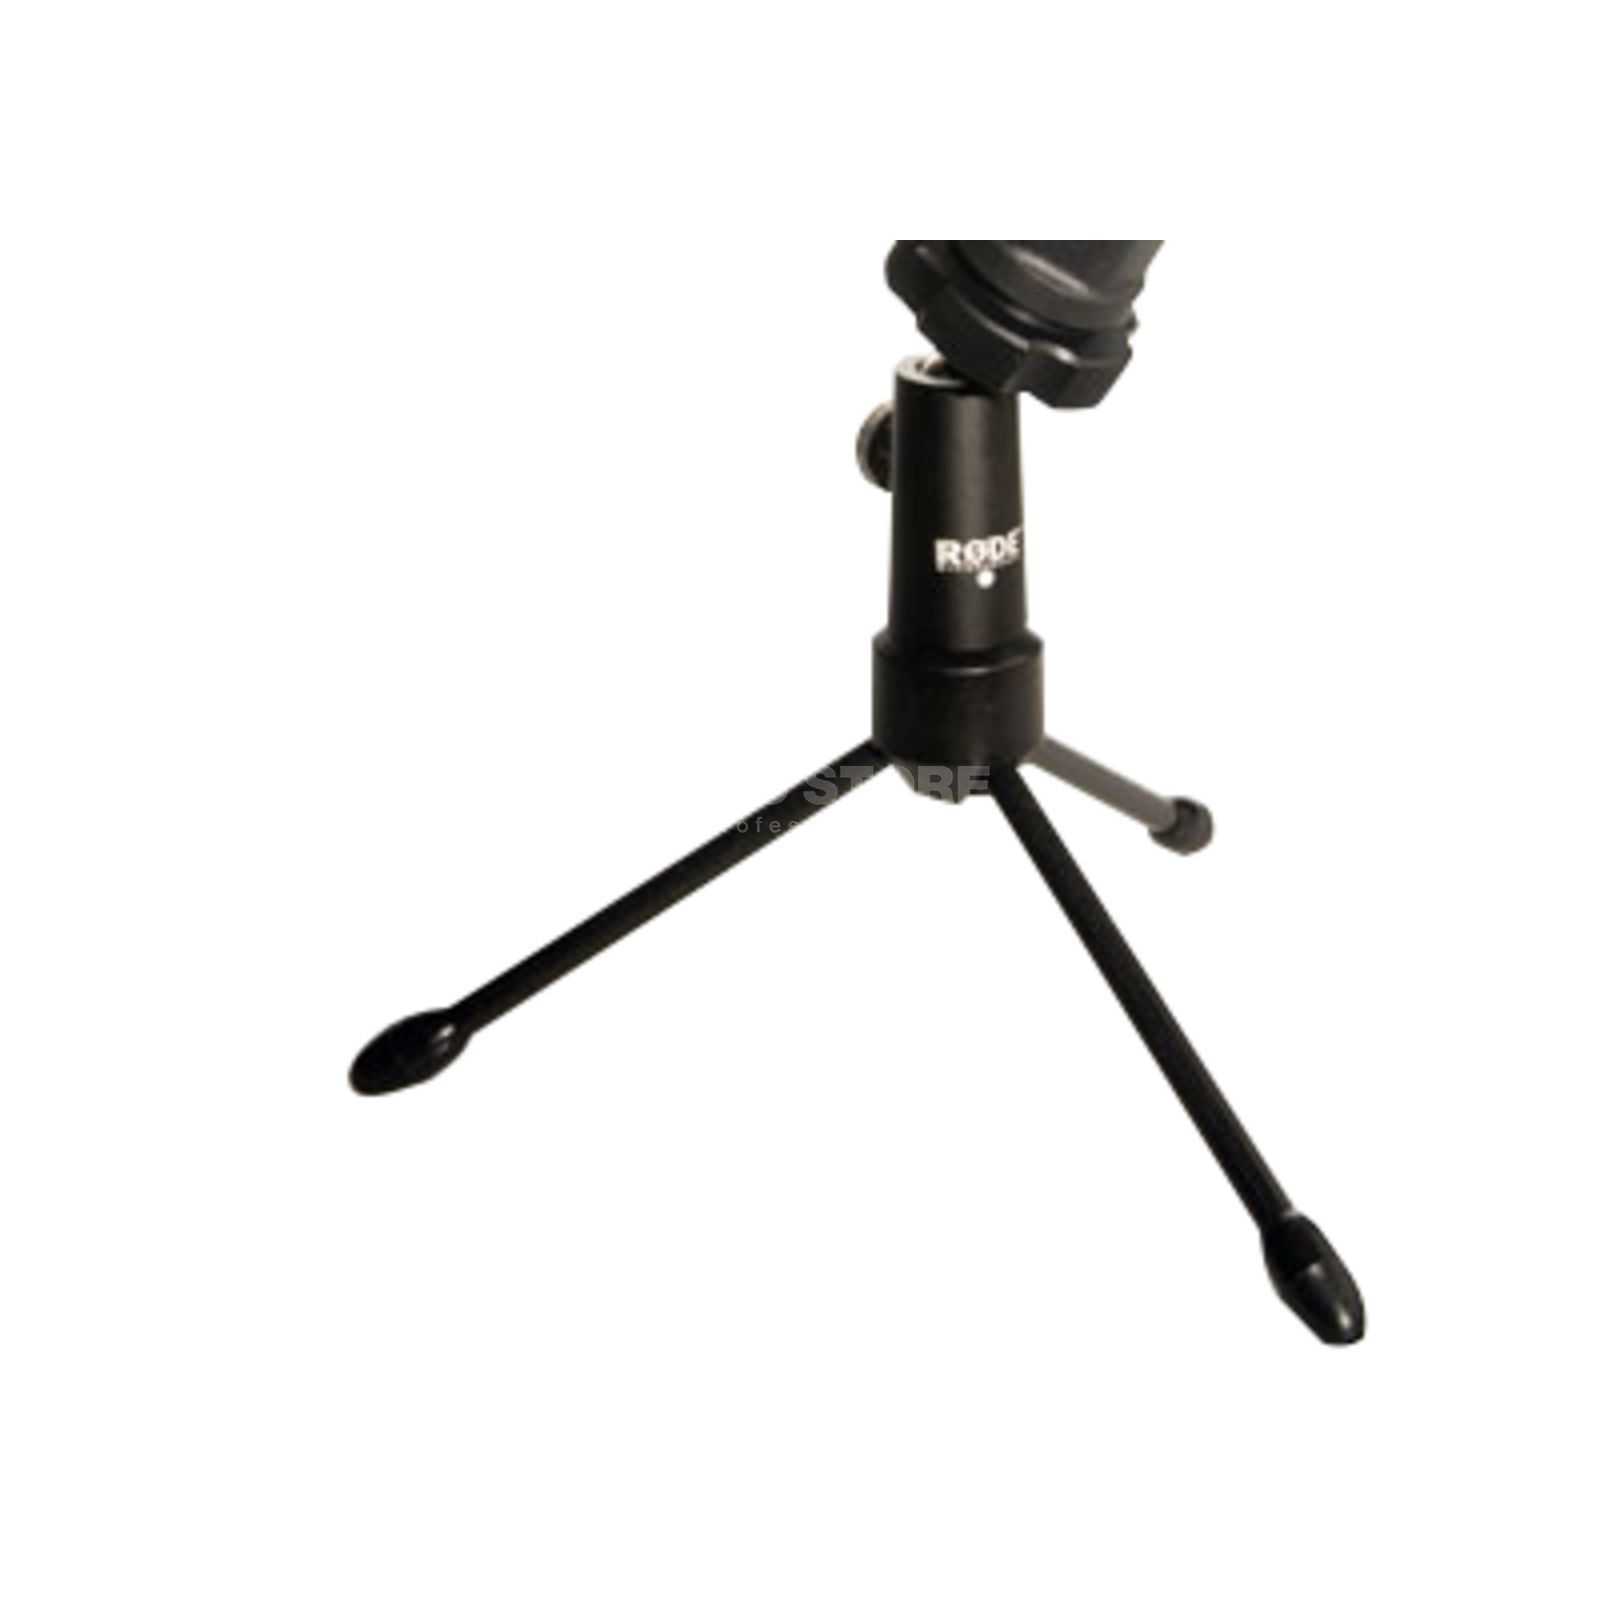 Rode Tripod Mini Collapsable Tabletop Microphone Stand Product Image